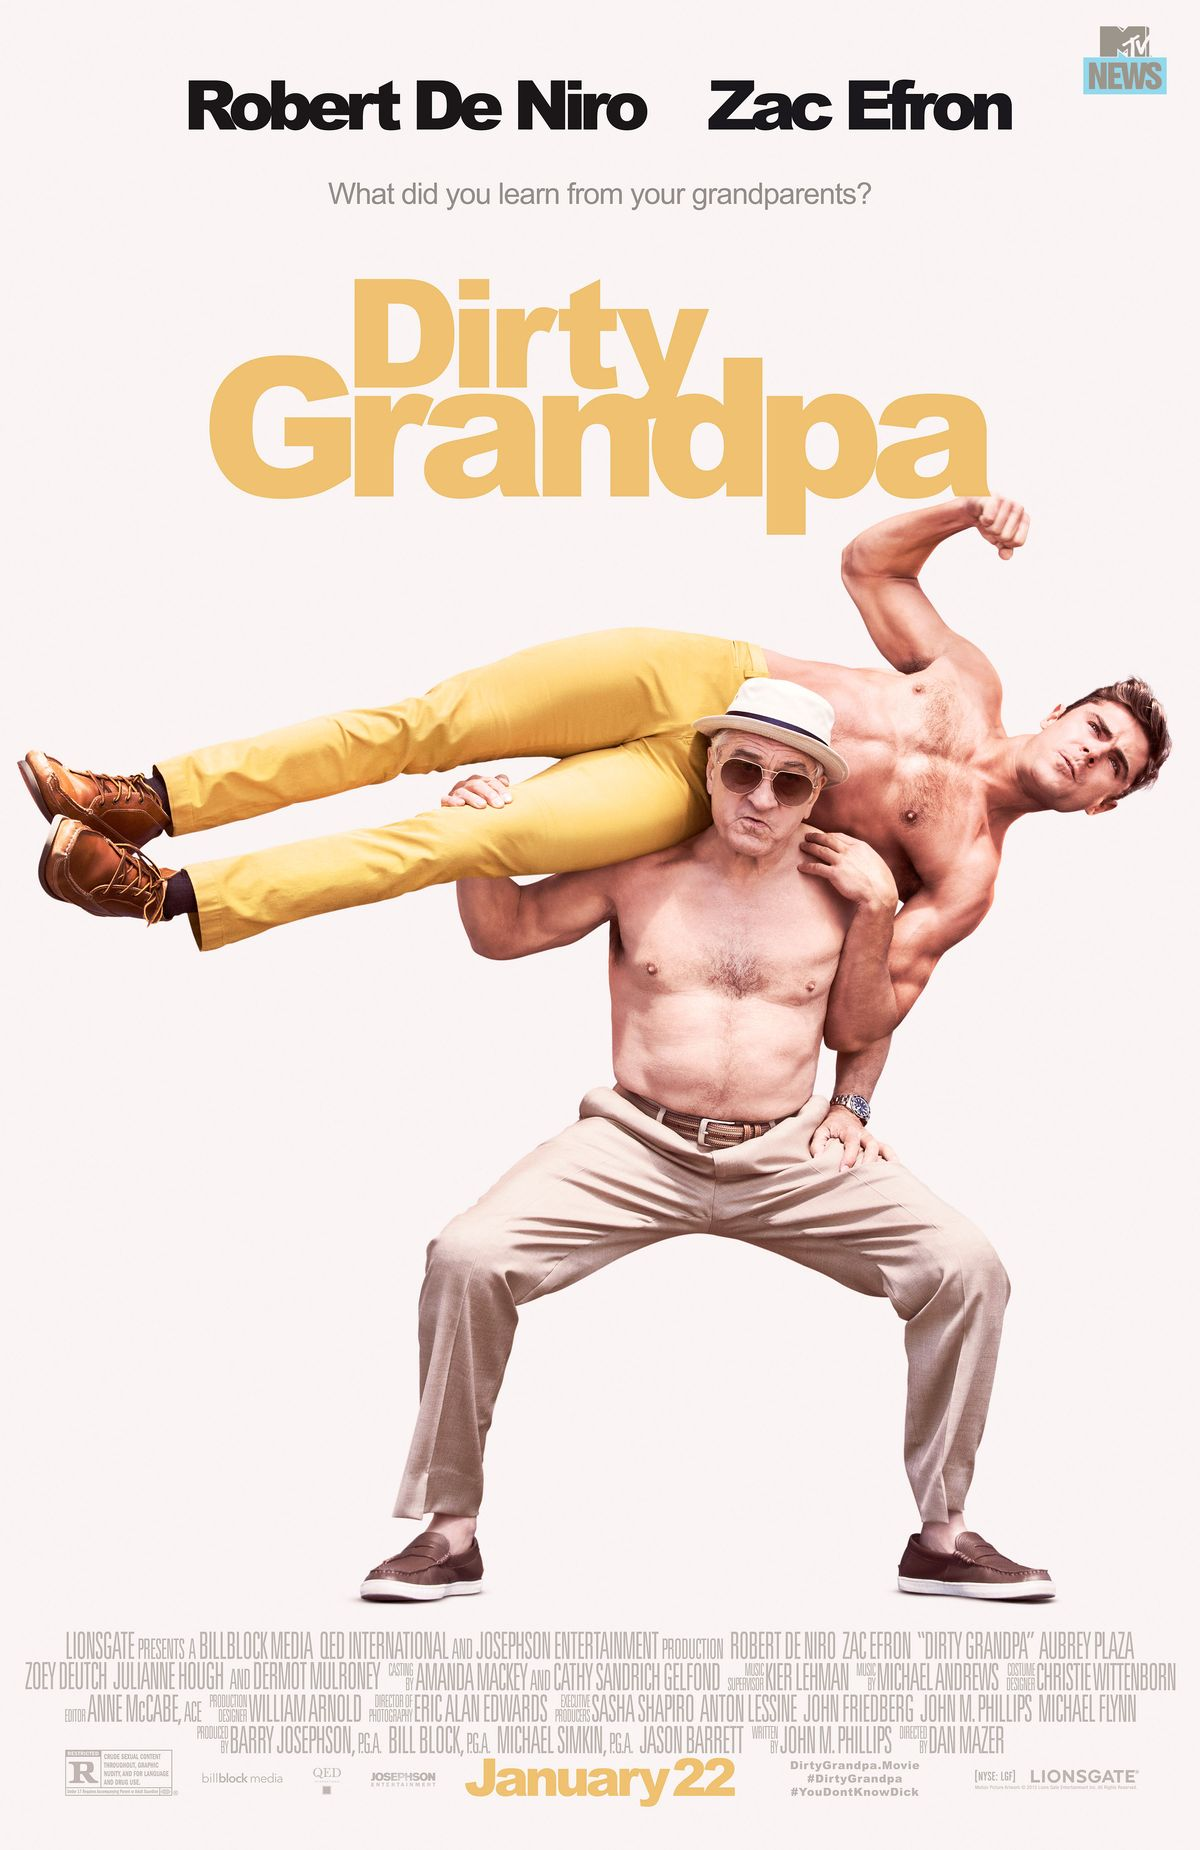 We don't need dirty grandpa